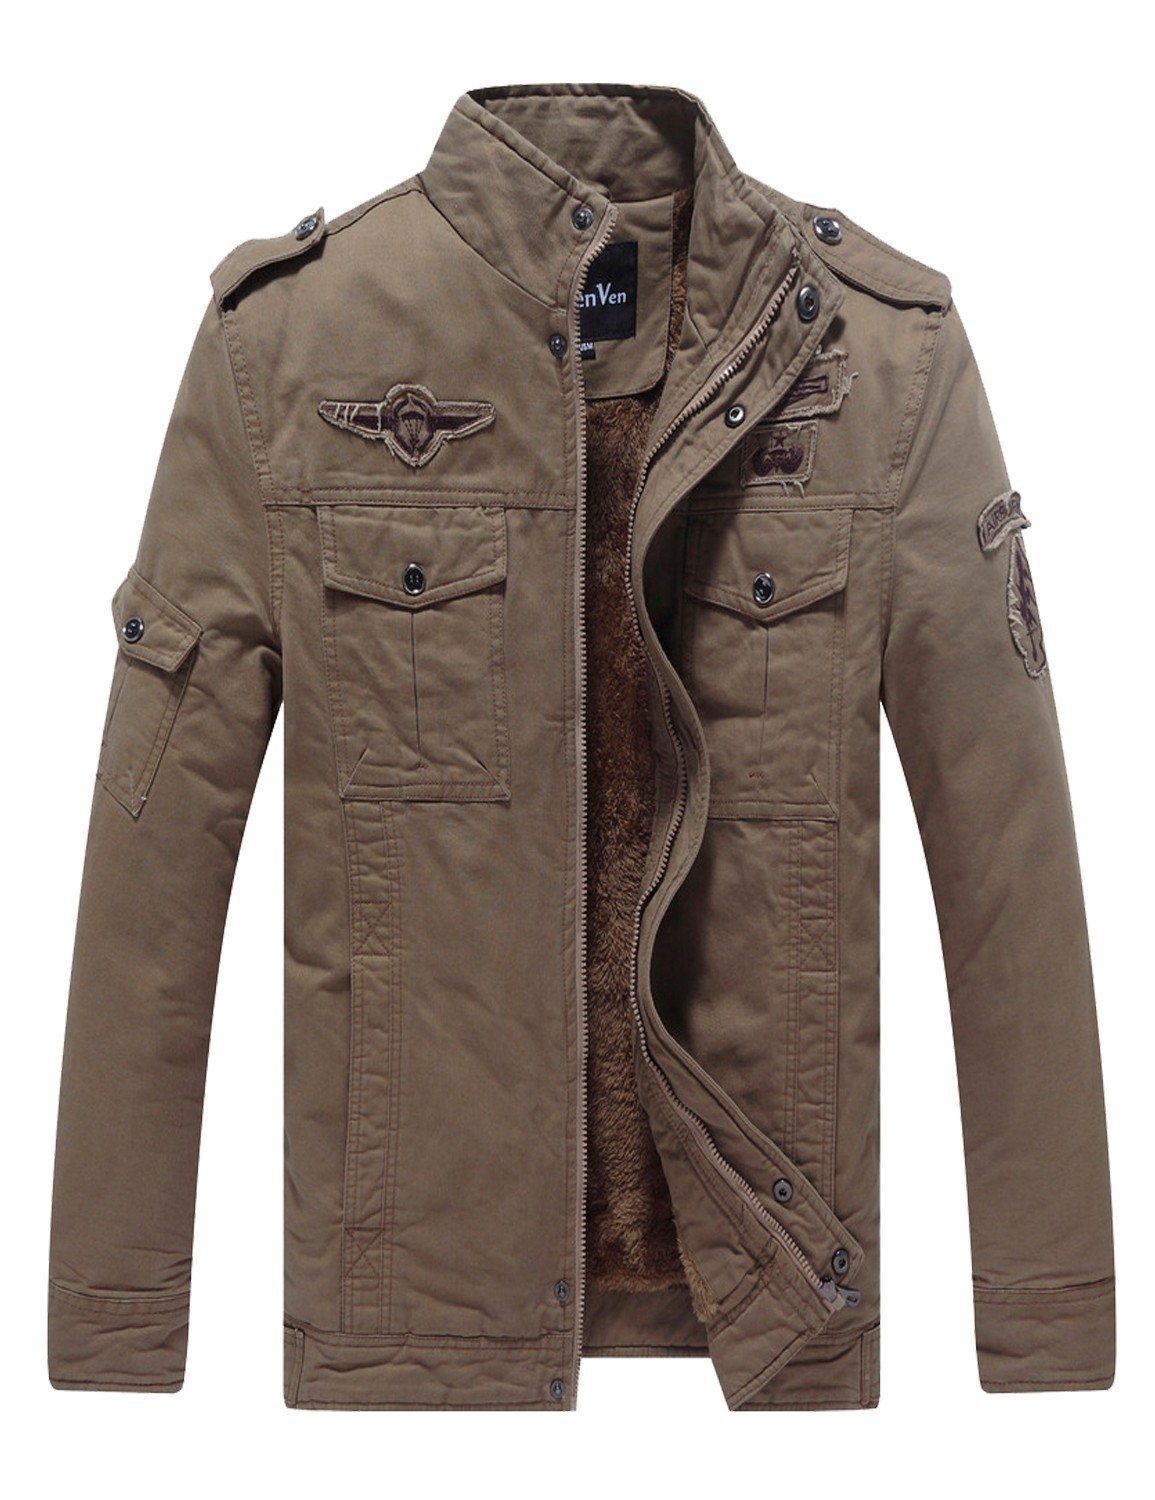 military style jacket wenven menu0027s winter military style air force jacket mxsglad